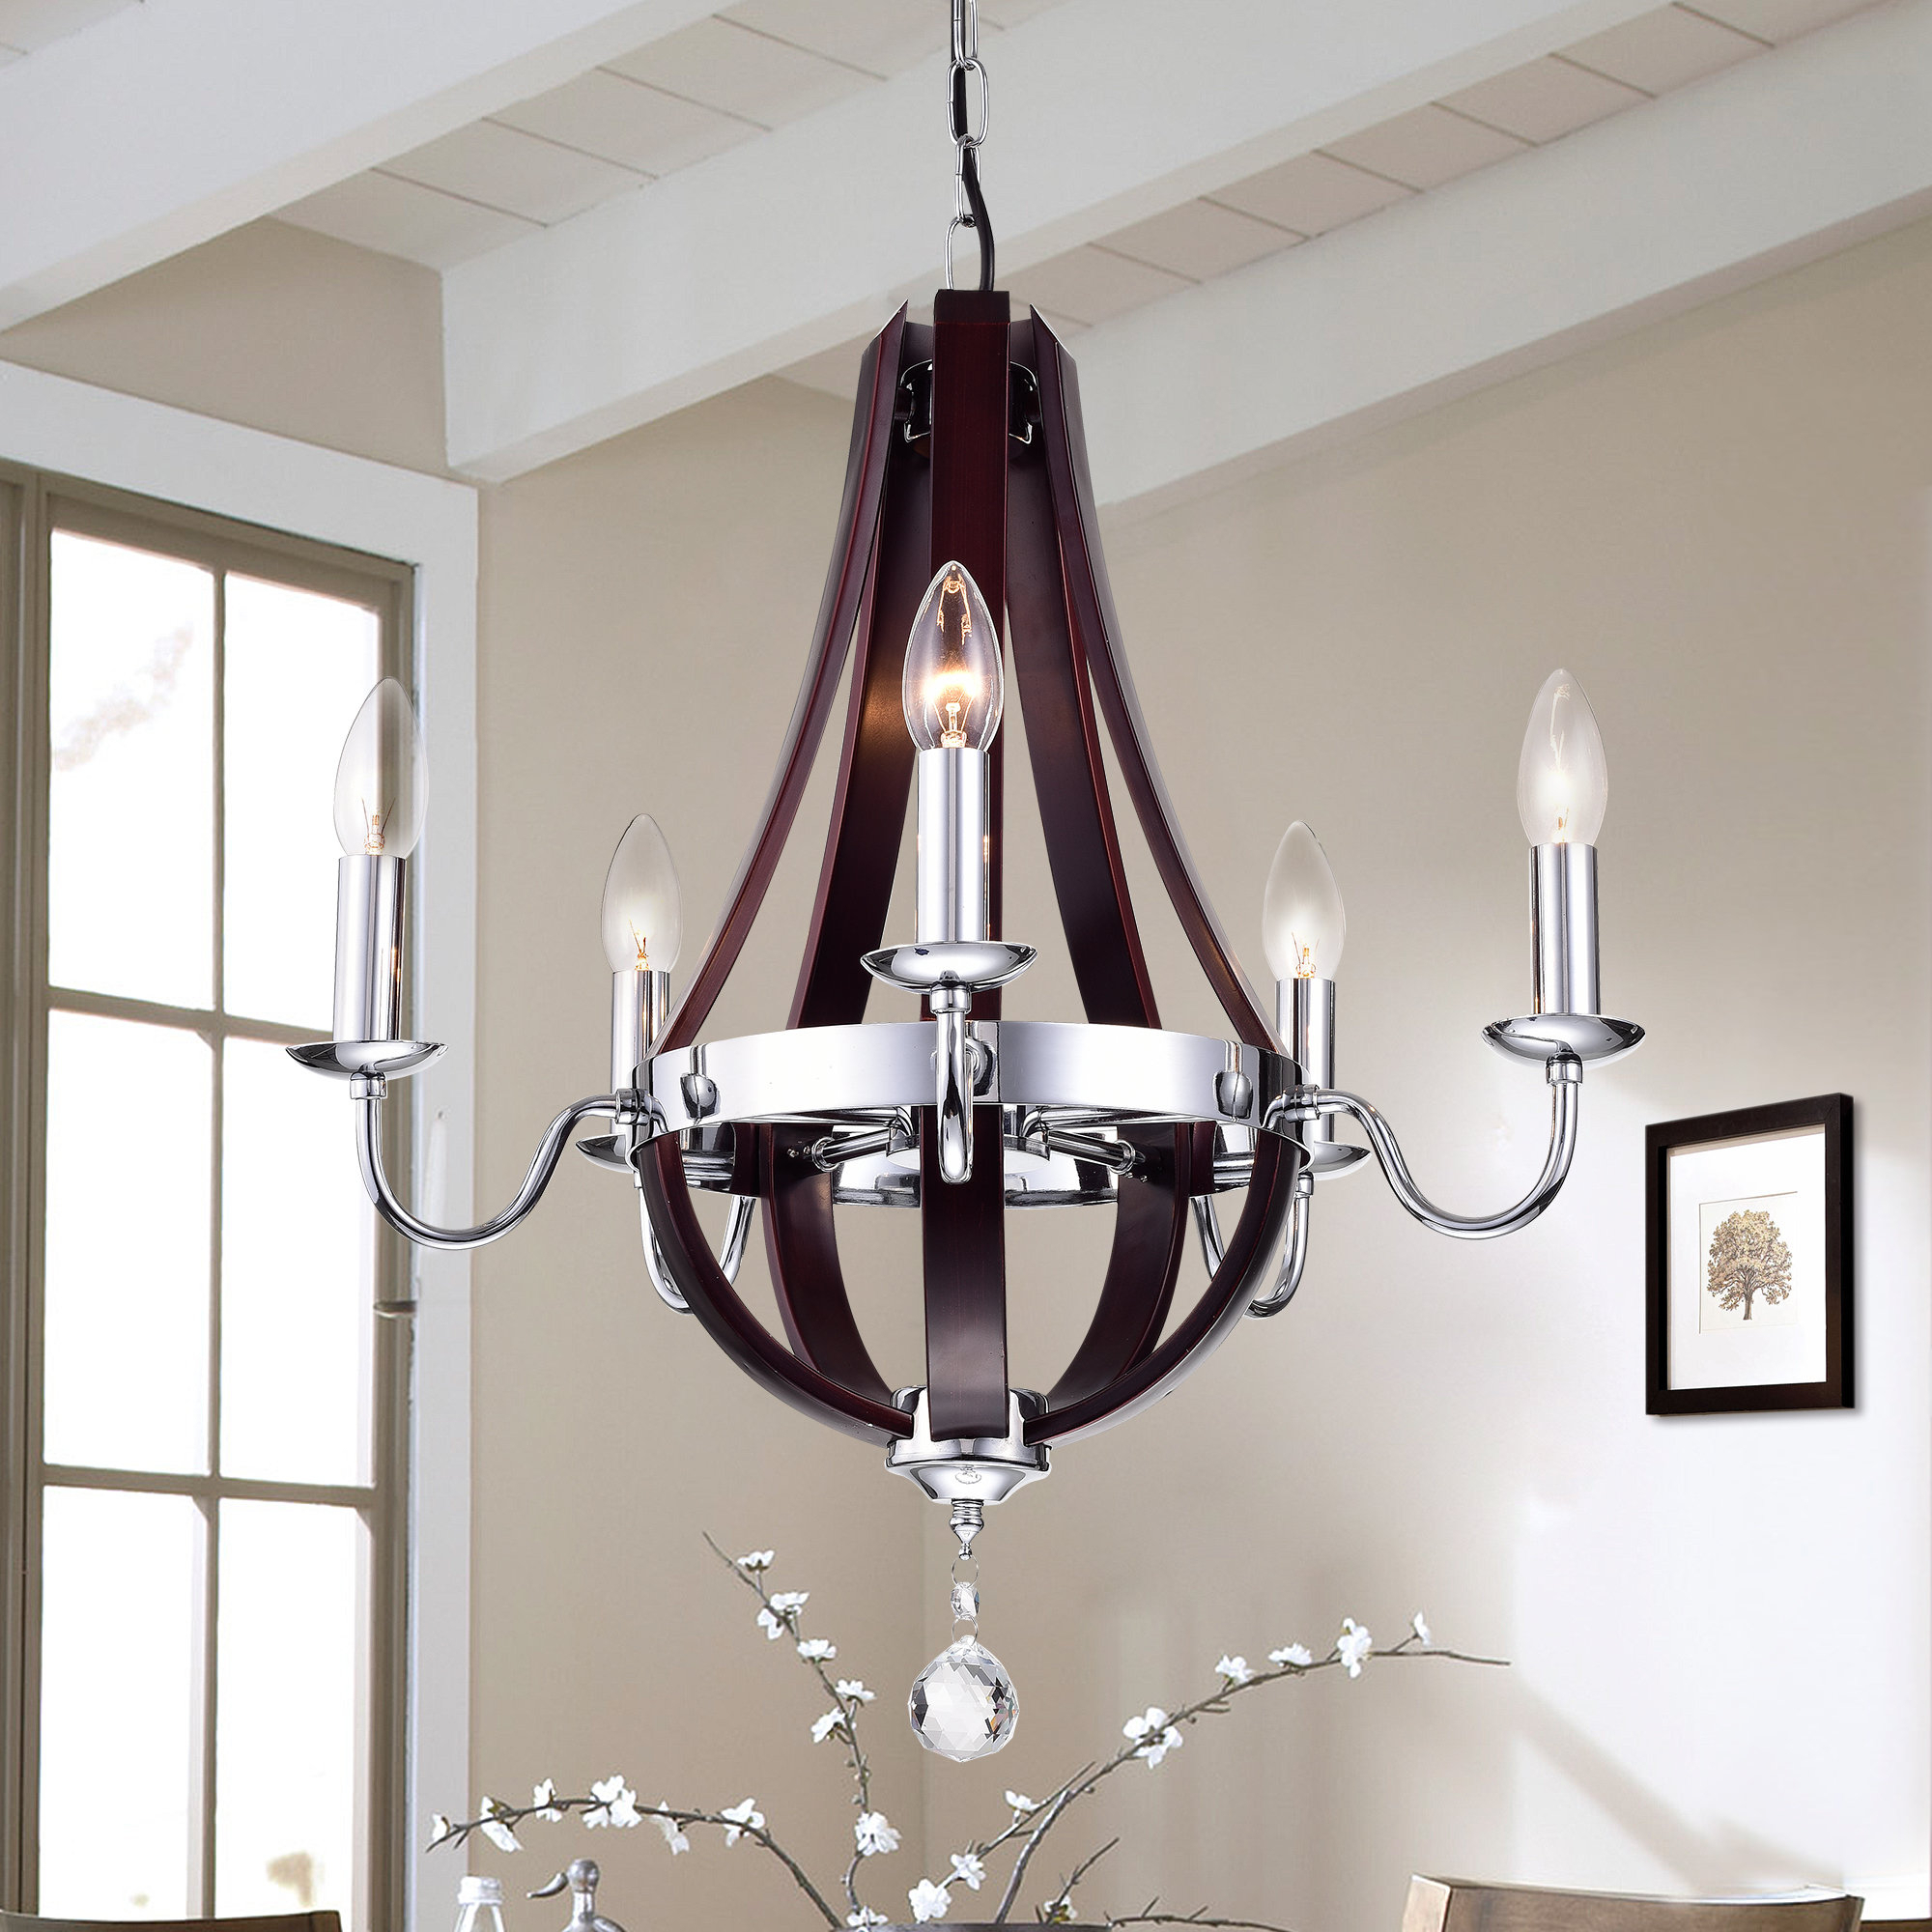 Kyrsten 5 Light Empire Chandelier With Regard To Most Recently Released Kenna 5 Light Empire Chandeliers (Gallery 6 of 25)